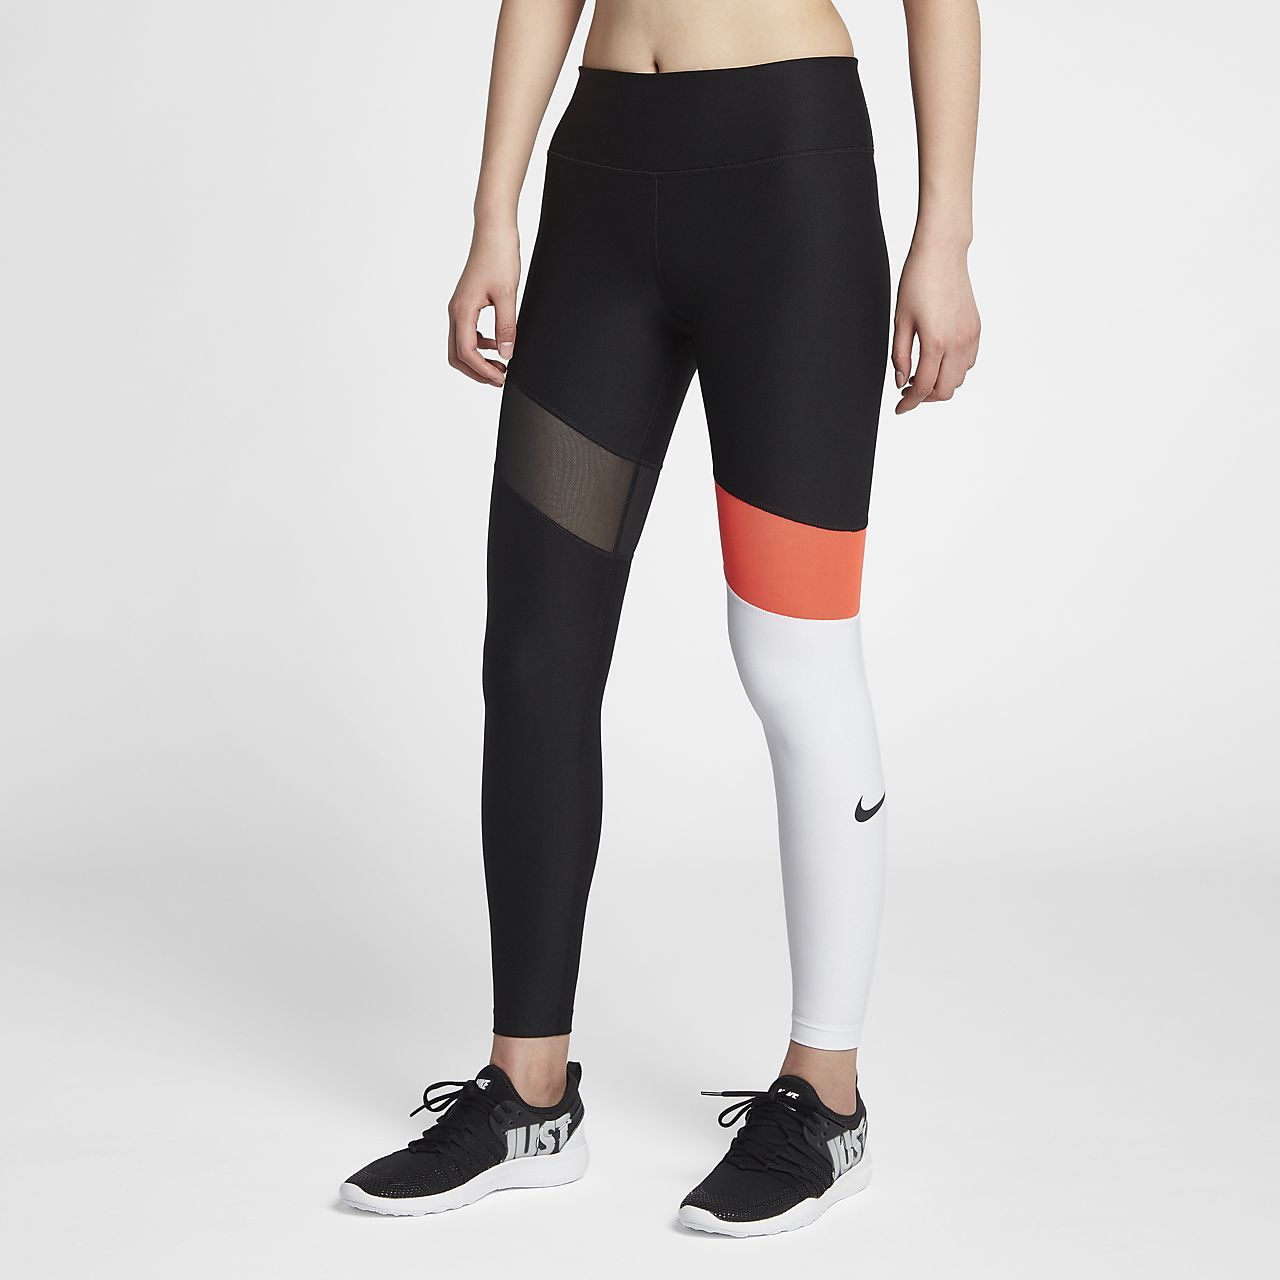 power woman tights